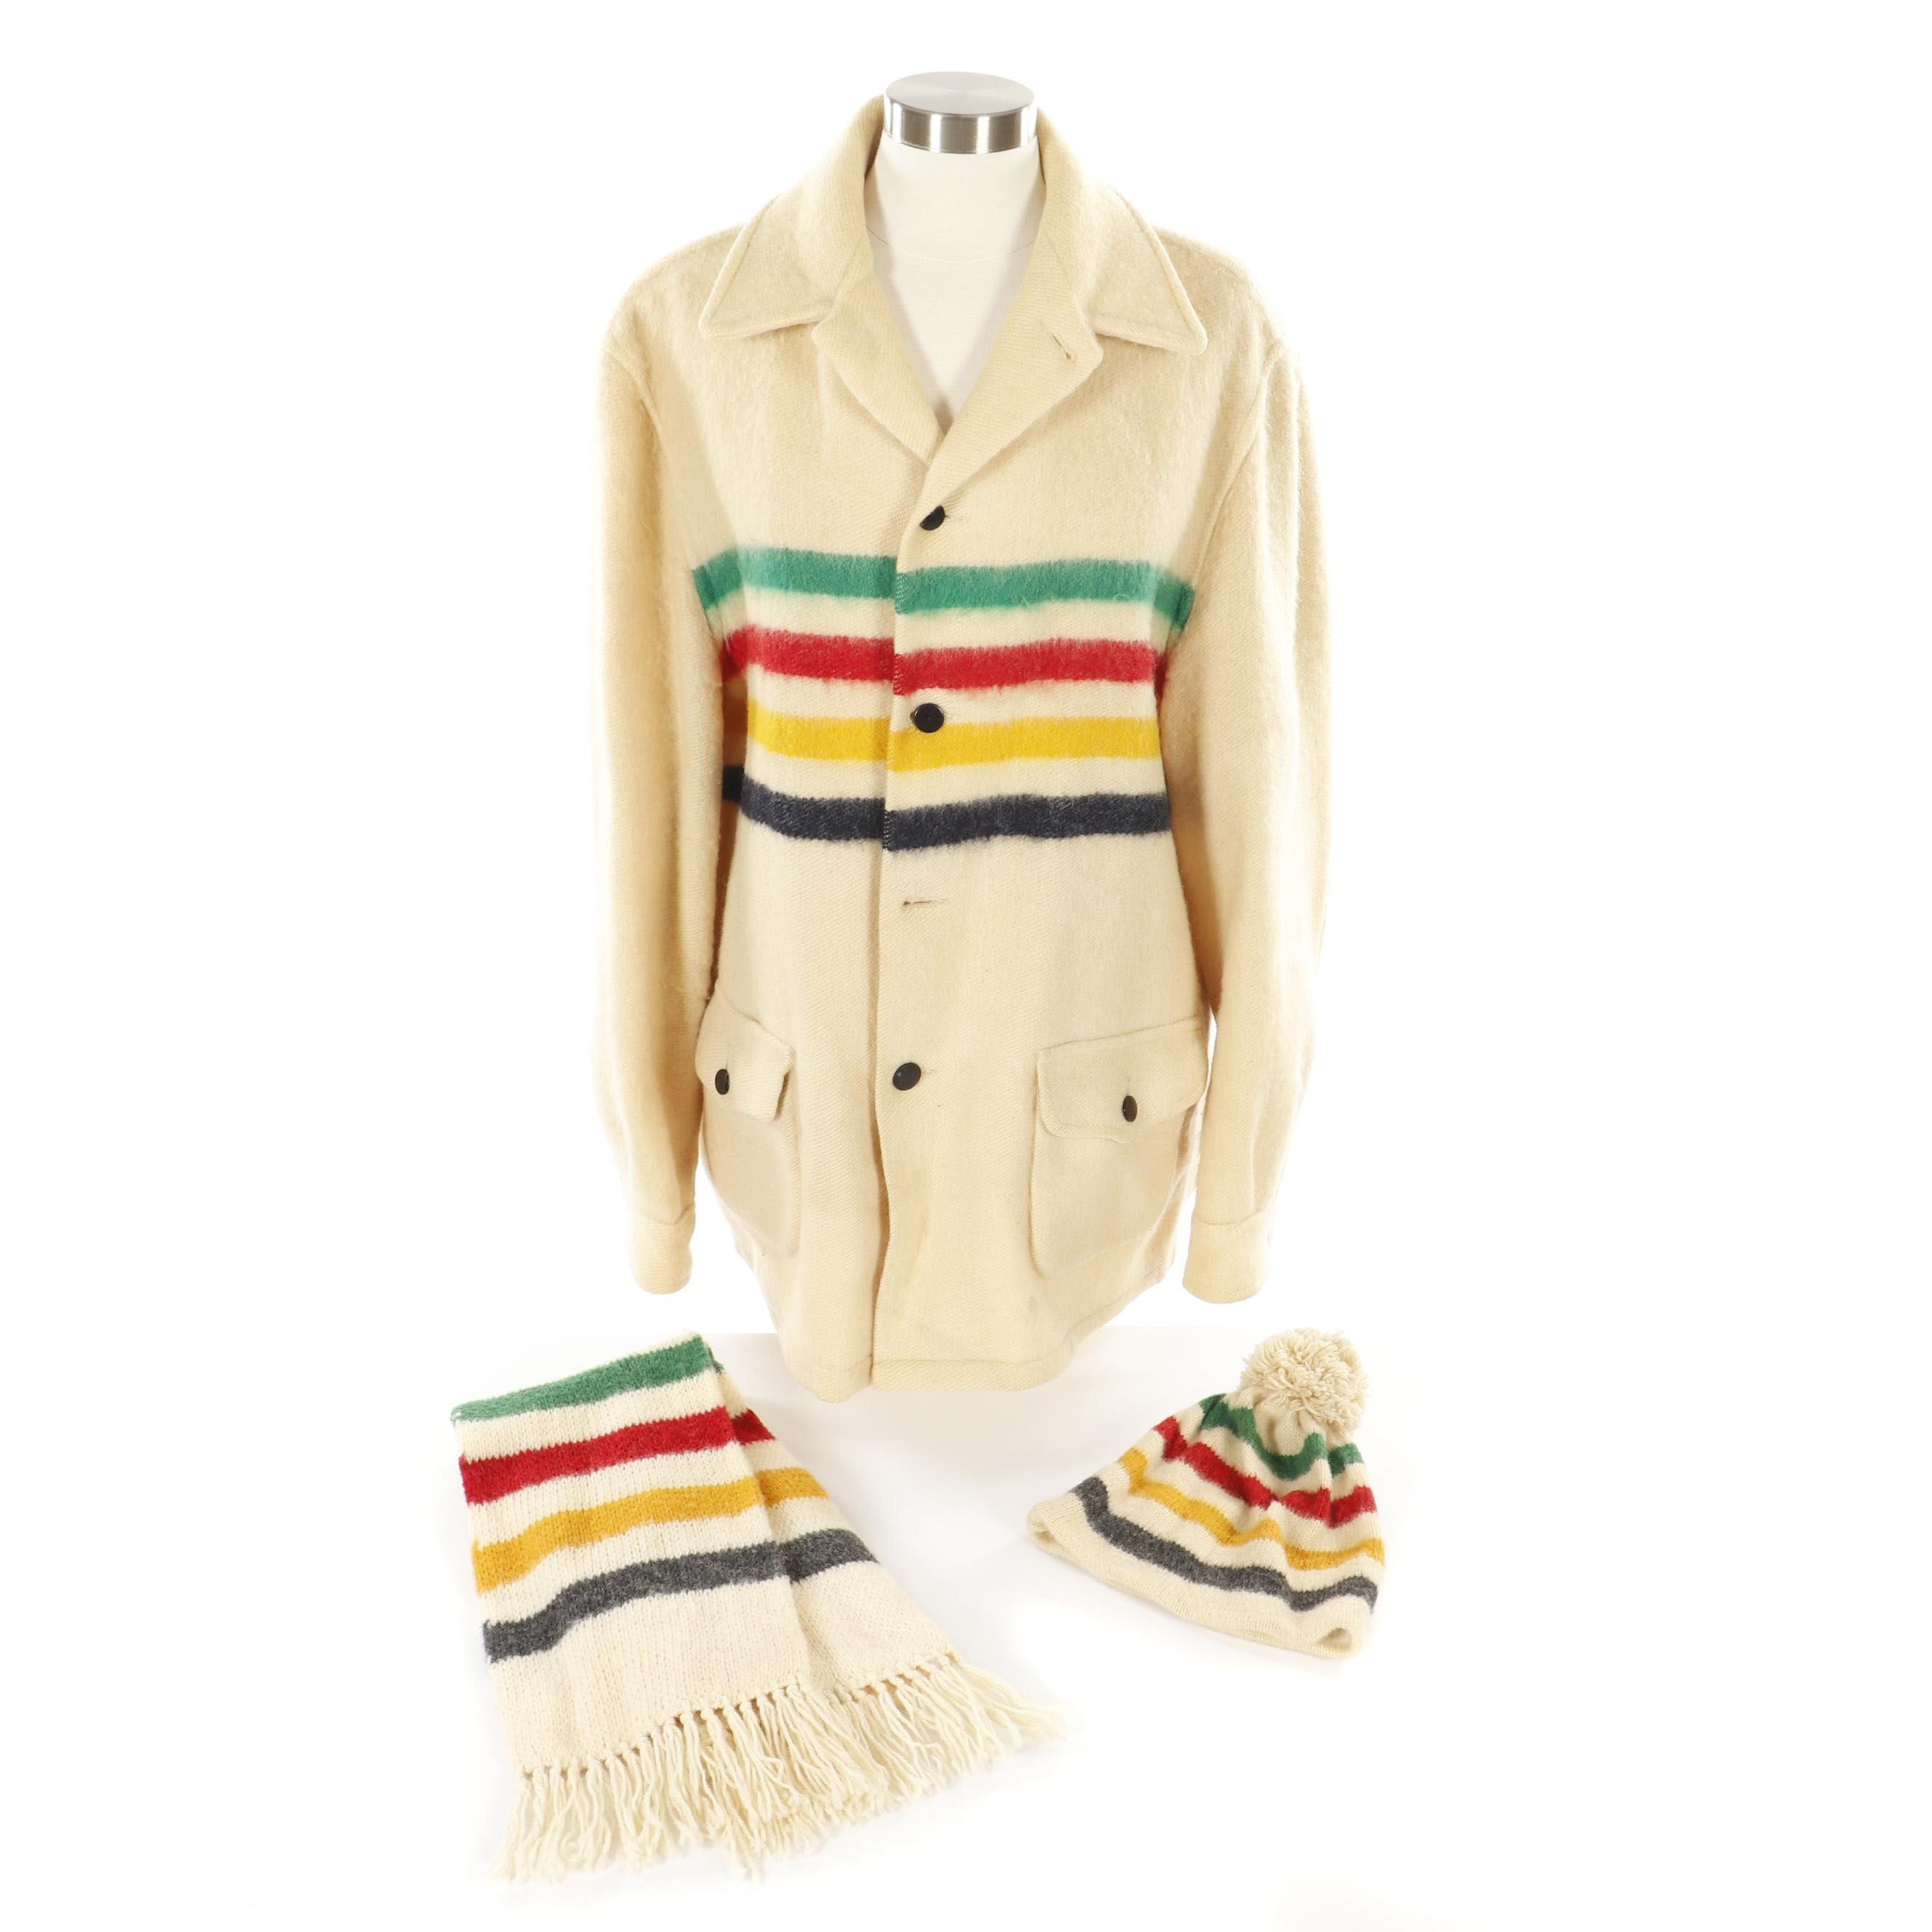 Hudson's Bay Company Point Blanket Jacket with Lands' End Beanie and Scarf